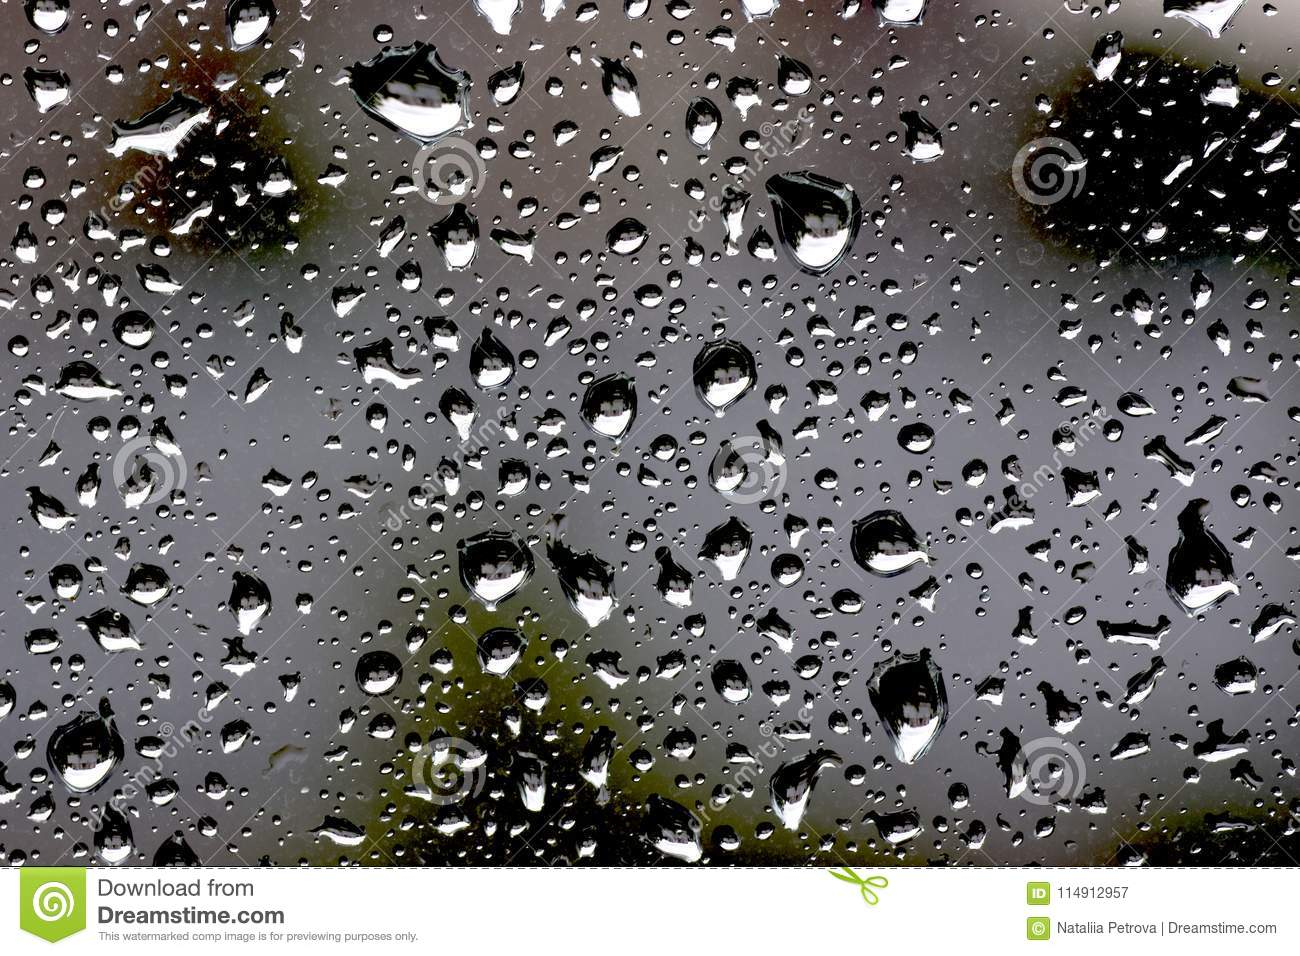 Wallpaper With Macro Water Drops On A Grey Glass Background Stock Image Image Of Glass Pattern 114912957 Macro drops blur glare colorful glass